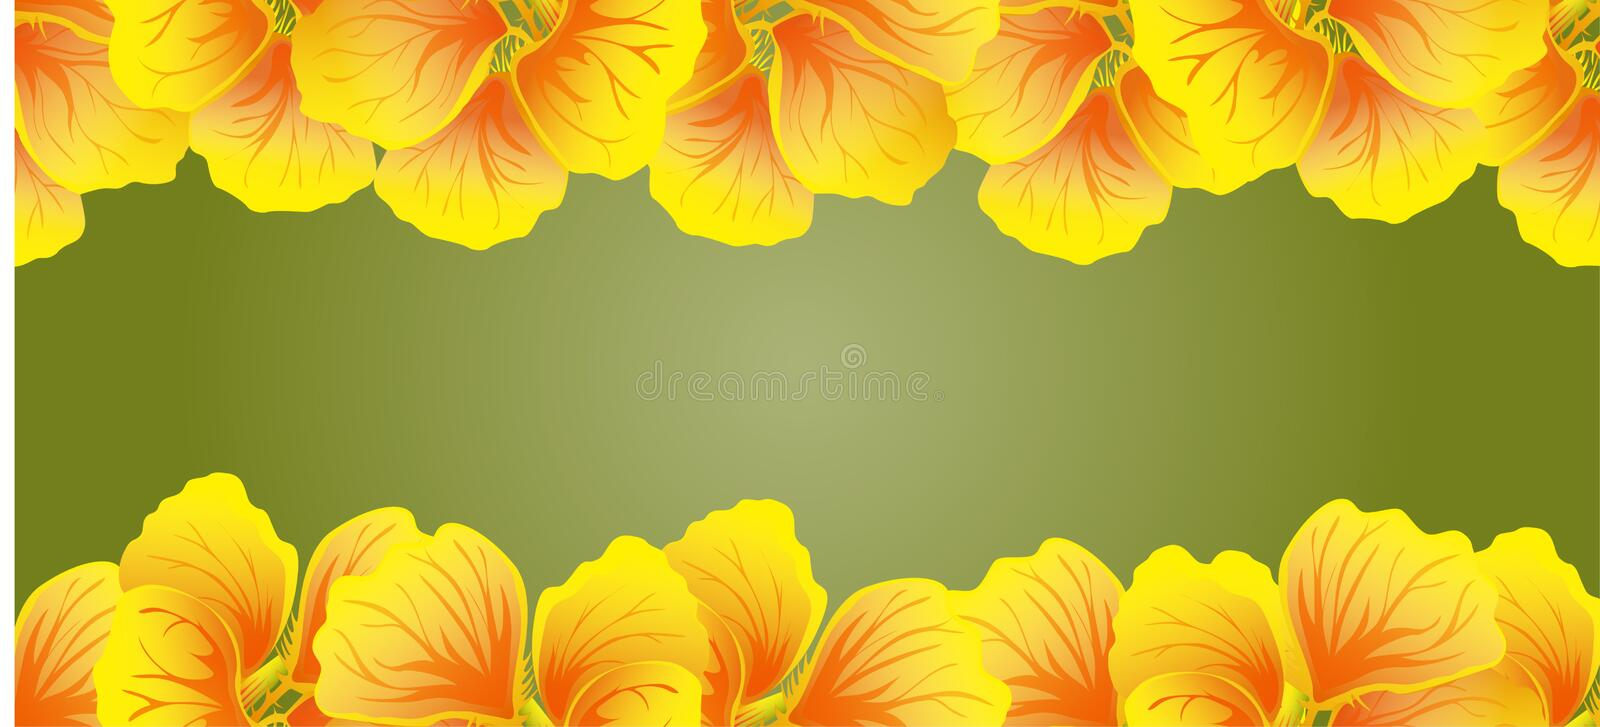 Bright Nasturtium Seamless border. Yellow flowers. Beautiful Horizontal banner. Green background. Card, invitation, poster. Greeting design.  royalty free illustration